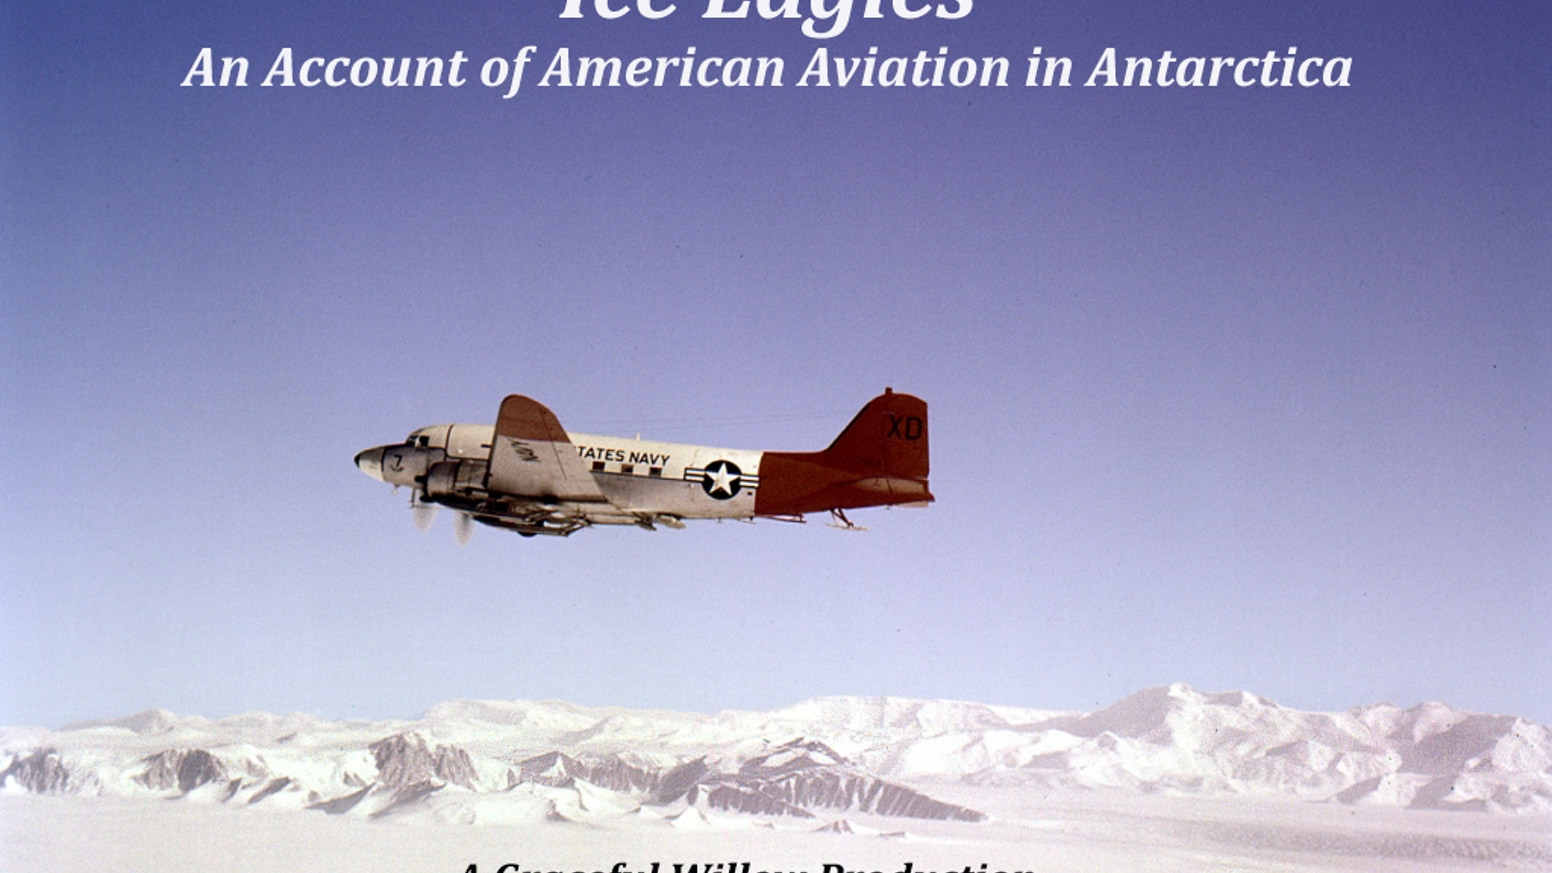 Ice Eagles: An Account of American Aviation in Antarctica by